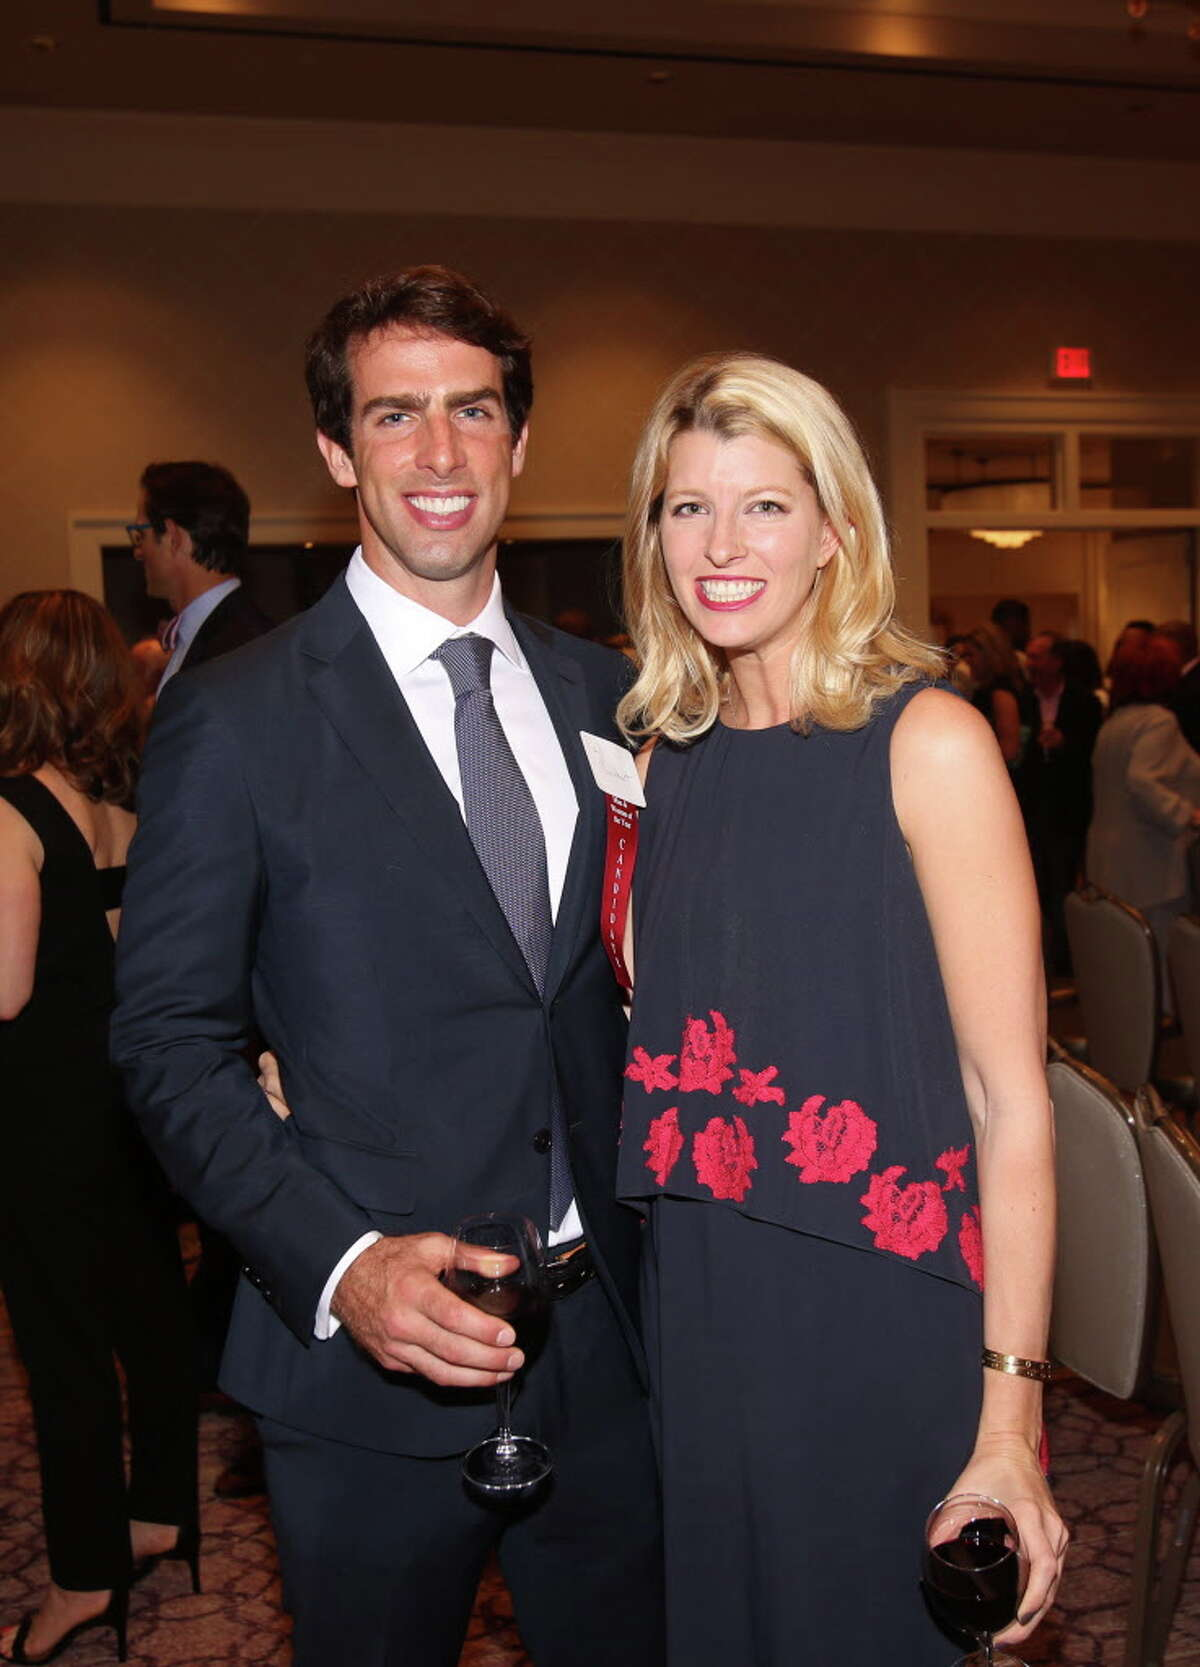 Paul and Katie Barnhart at the LLS Man & Woman of the Year kickoff celebration .